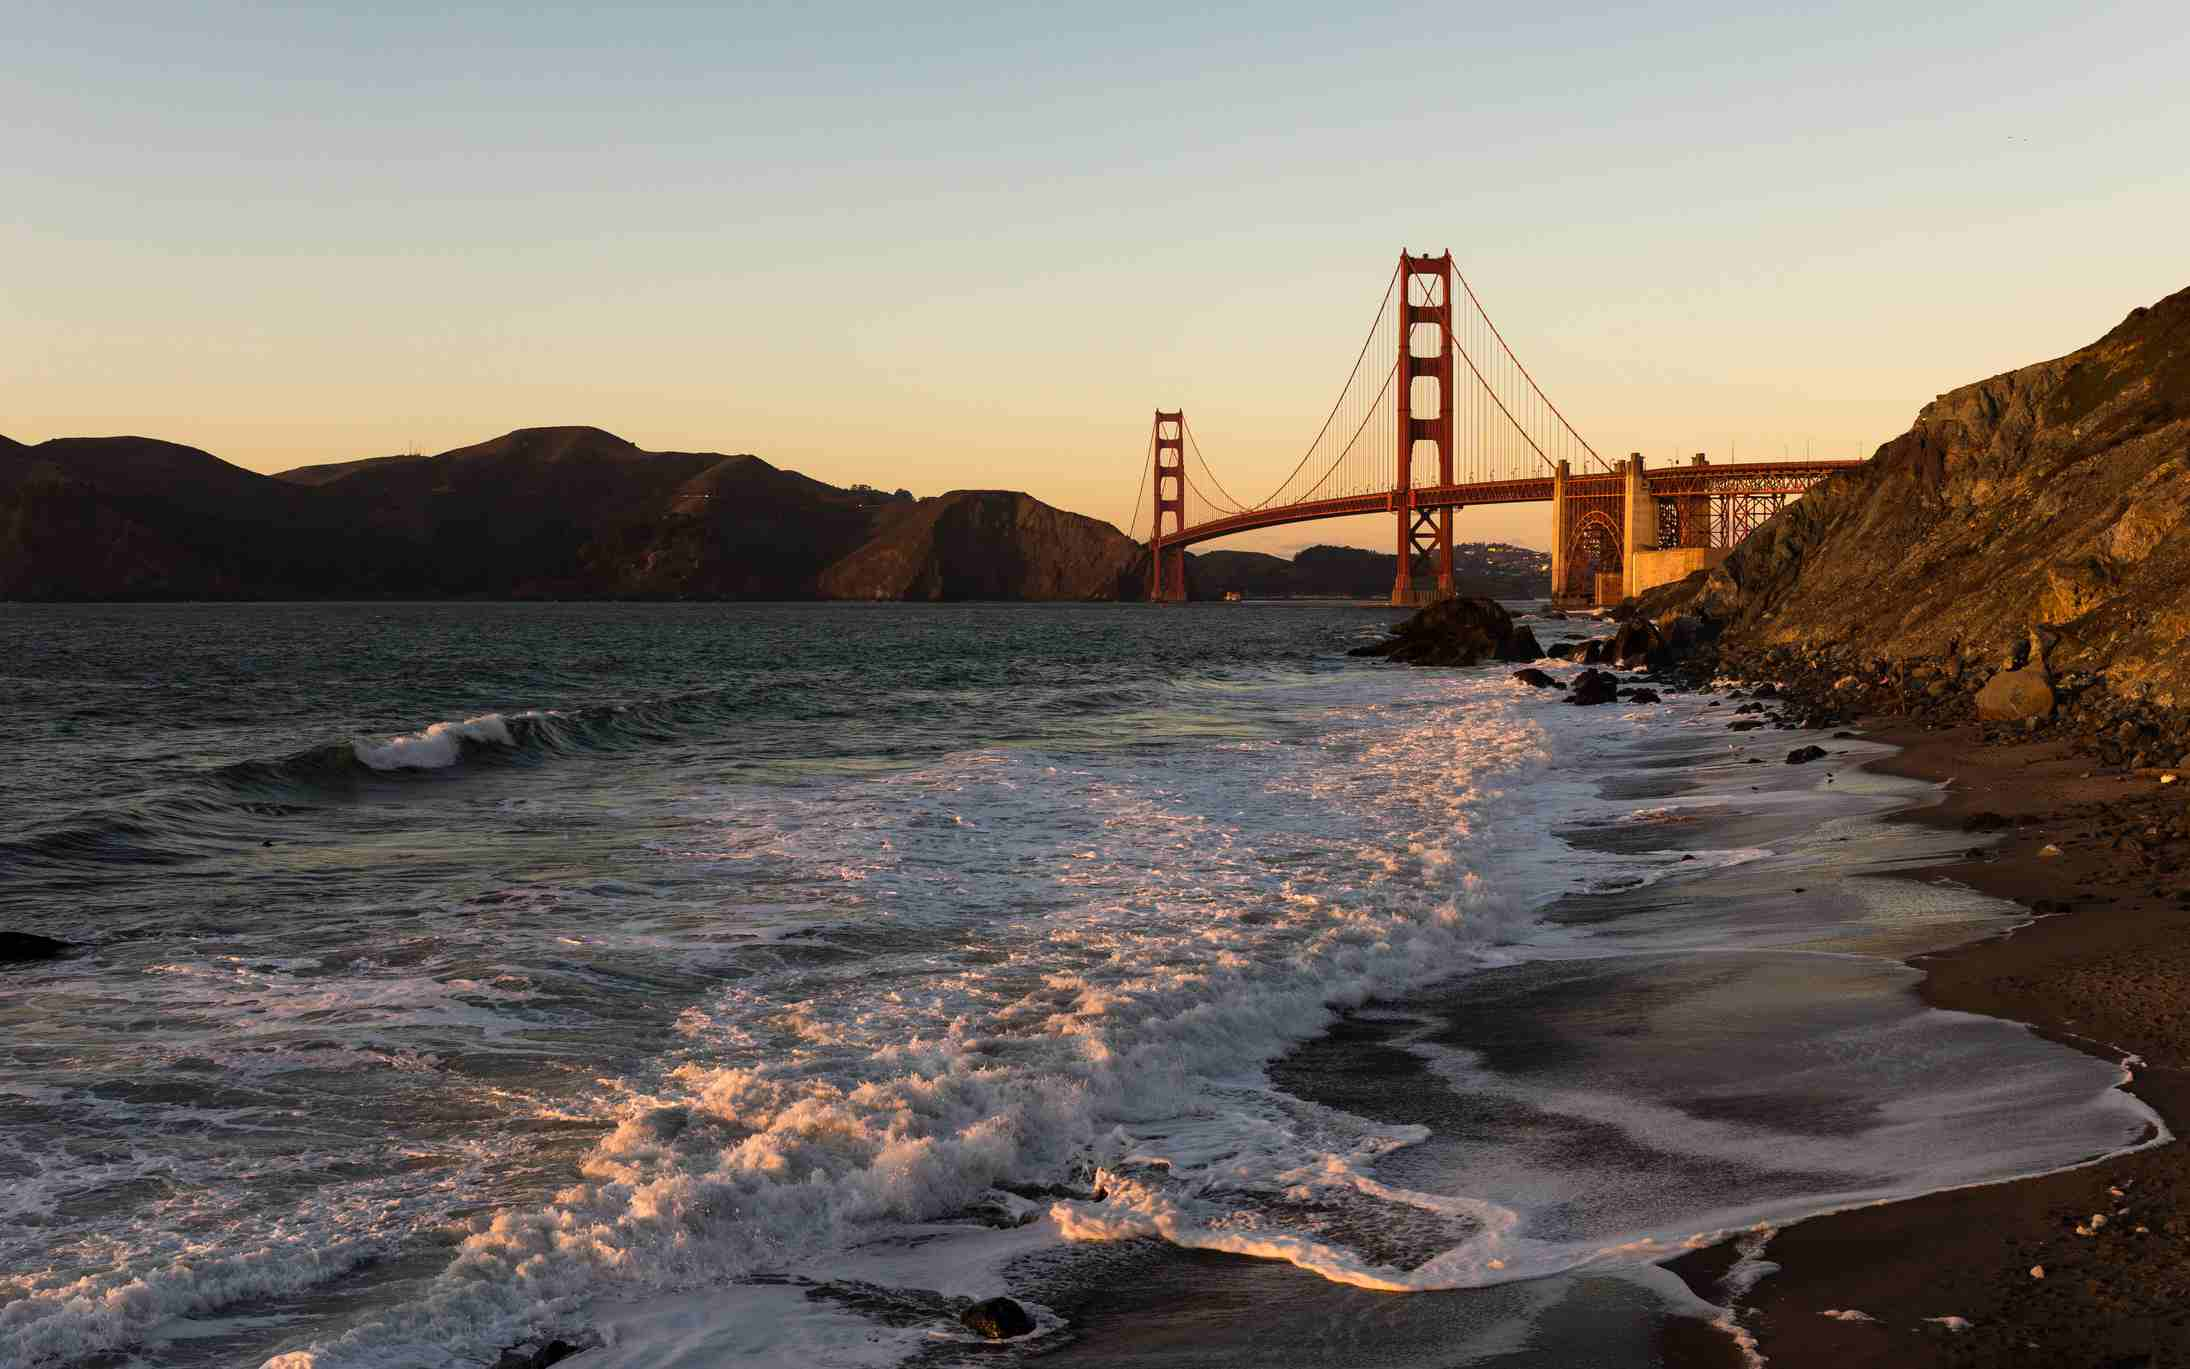 San Francisco's Marshall Beach, near Golden Gate overlook, located at the base of the Golden Gate Bridge at sunset